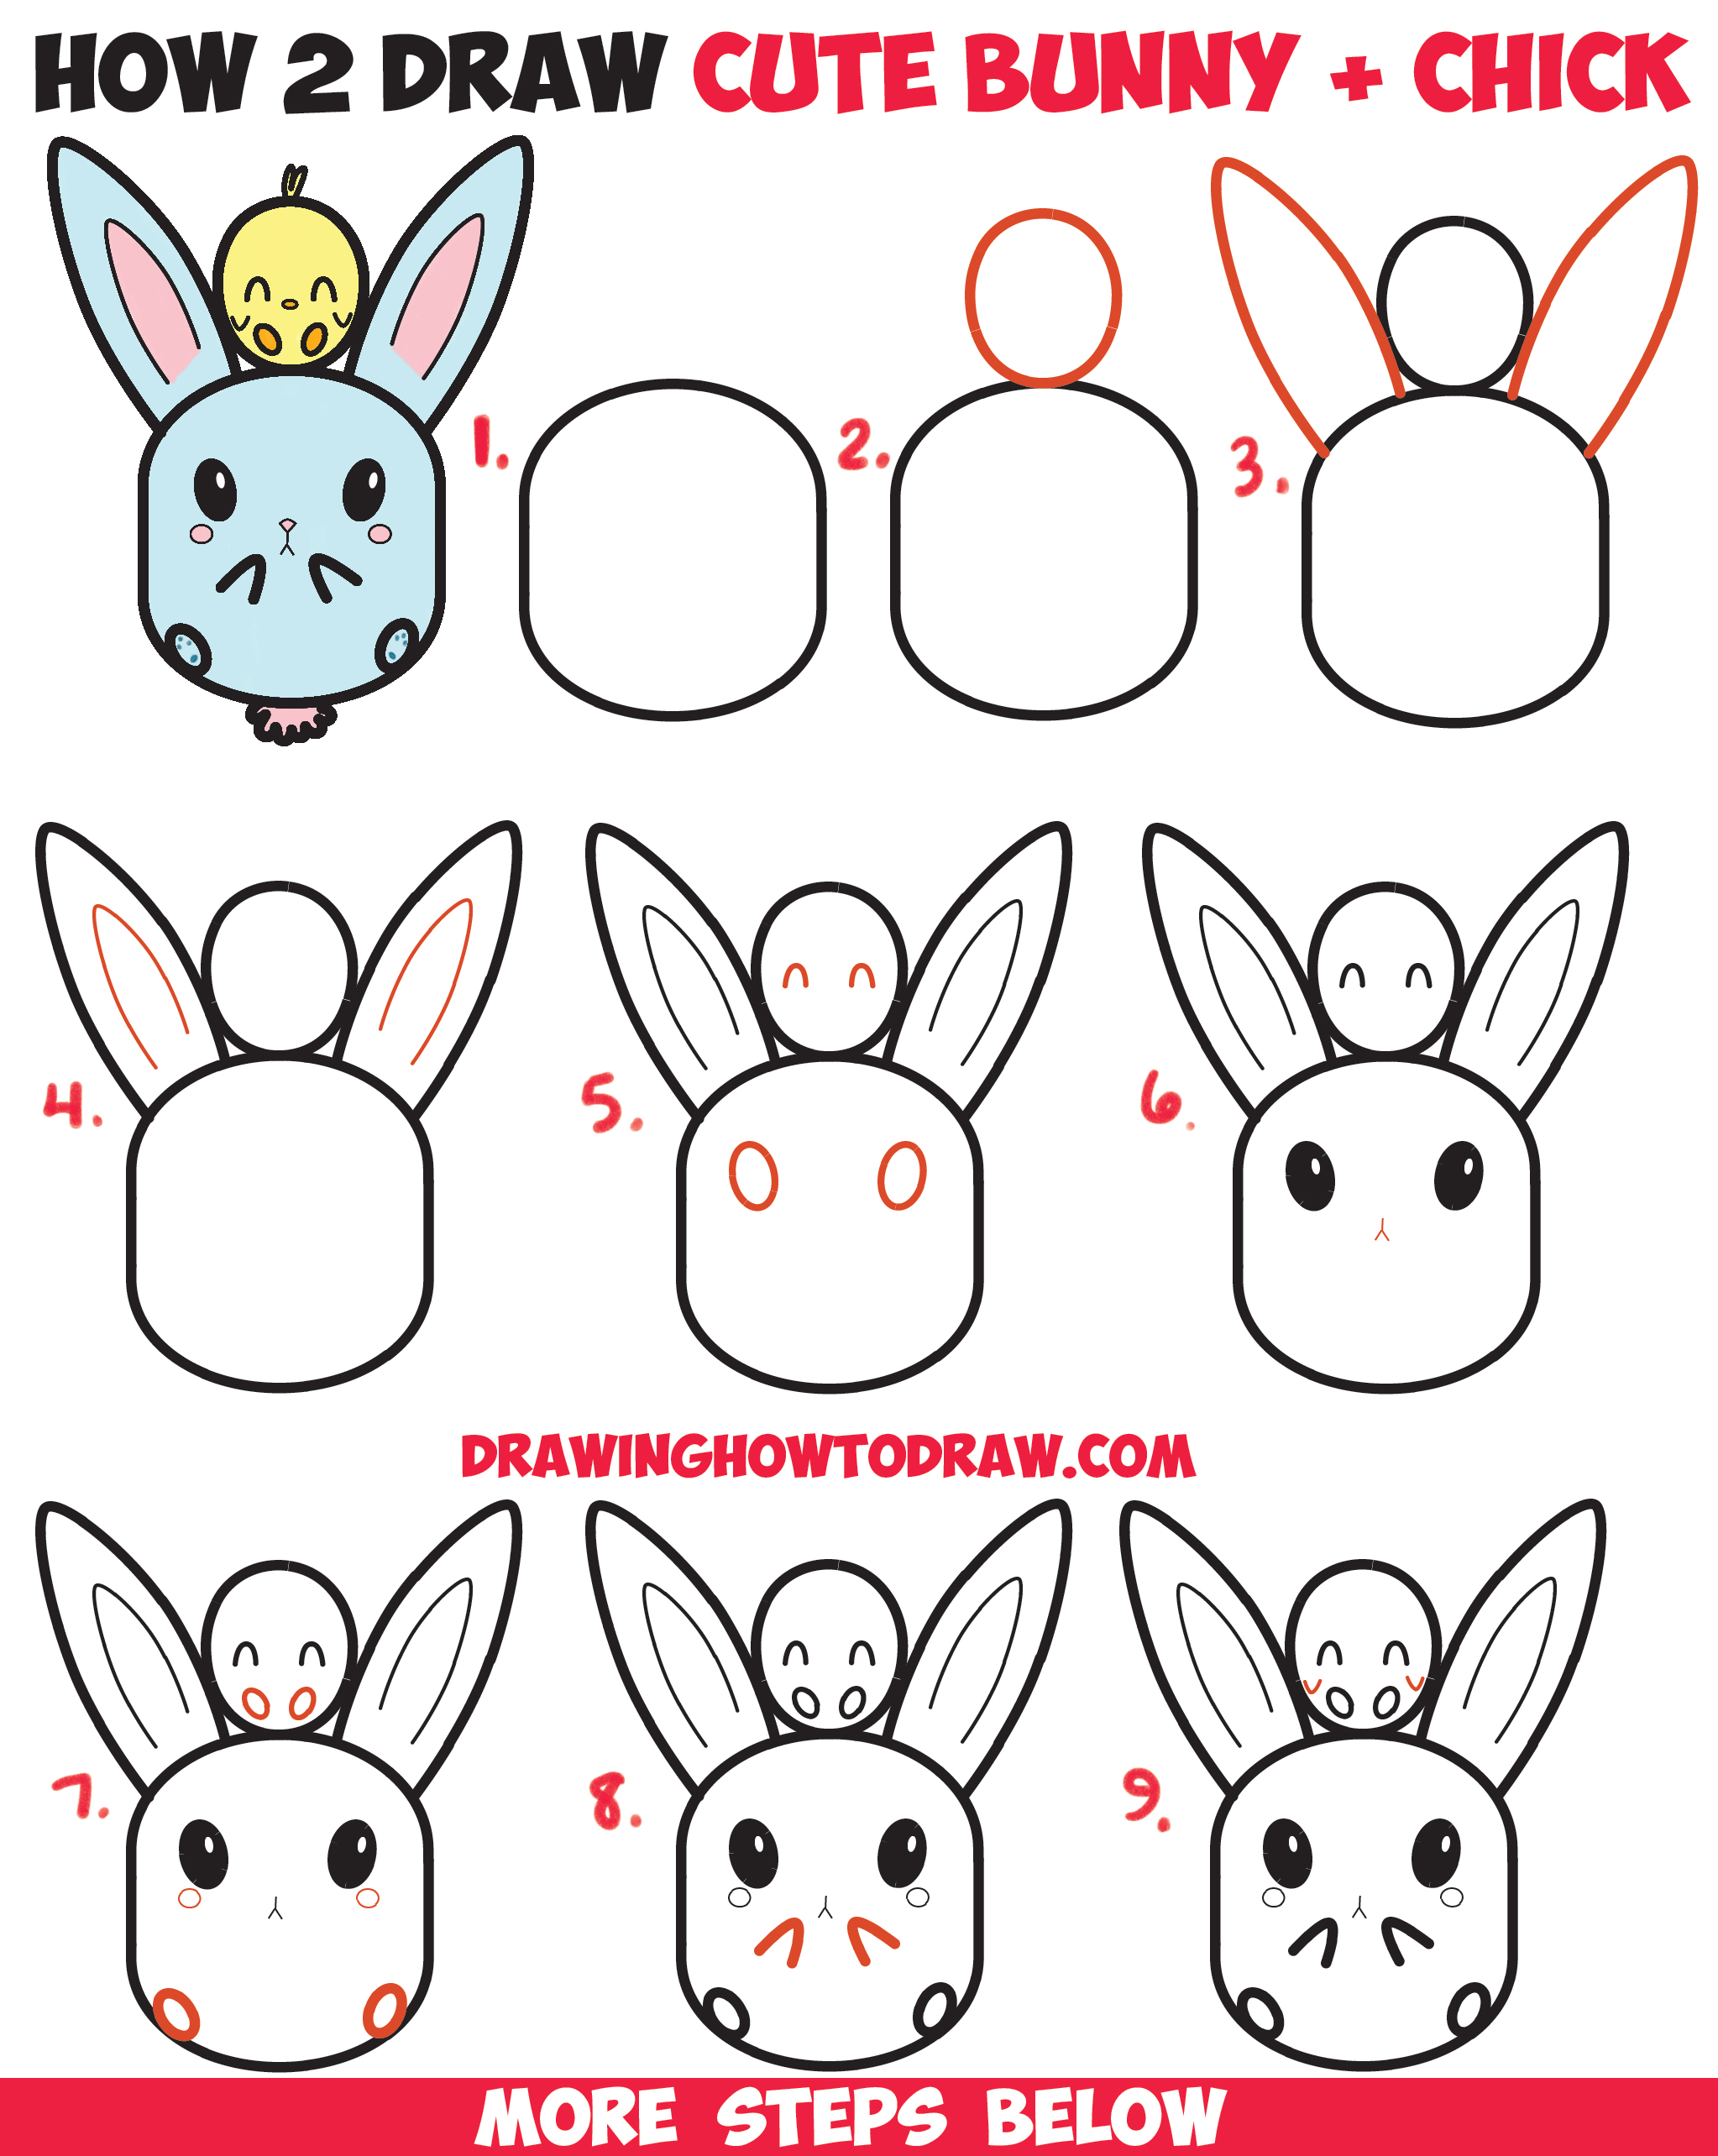 How to Draw Cute Kawaii / Chibi Bunny Rabbit and Baby Chick Easy Step by Step Drawing Tutorial for Kids for Easter and Spring